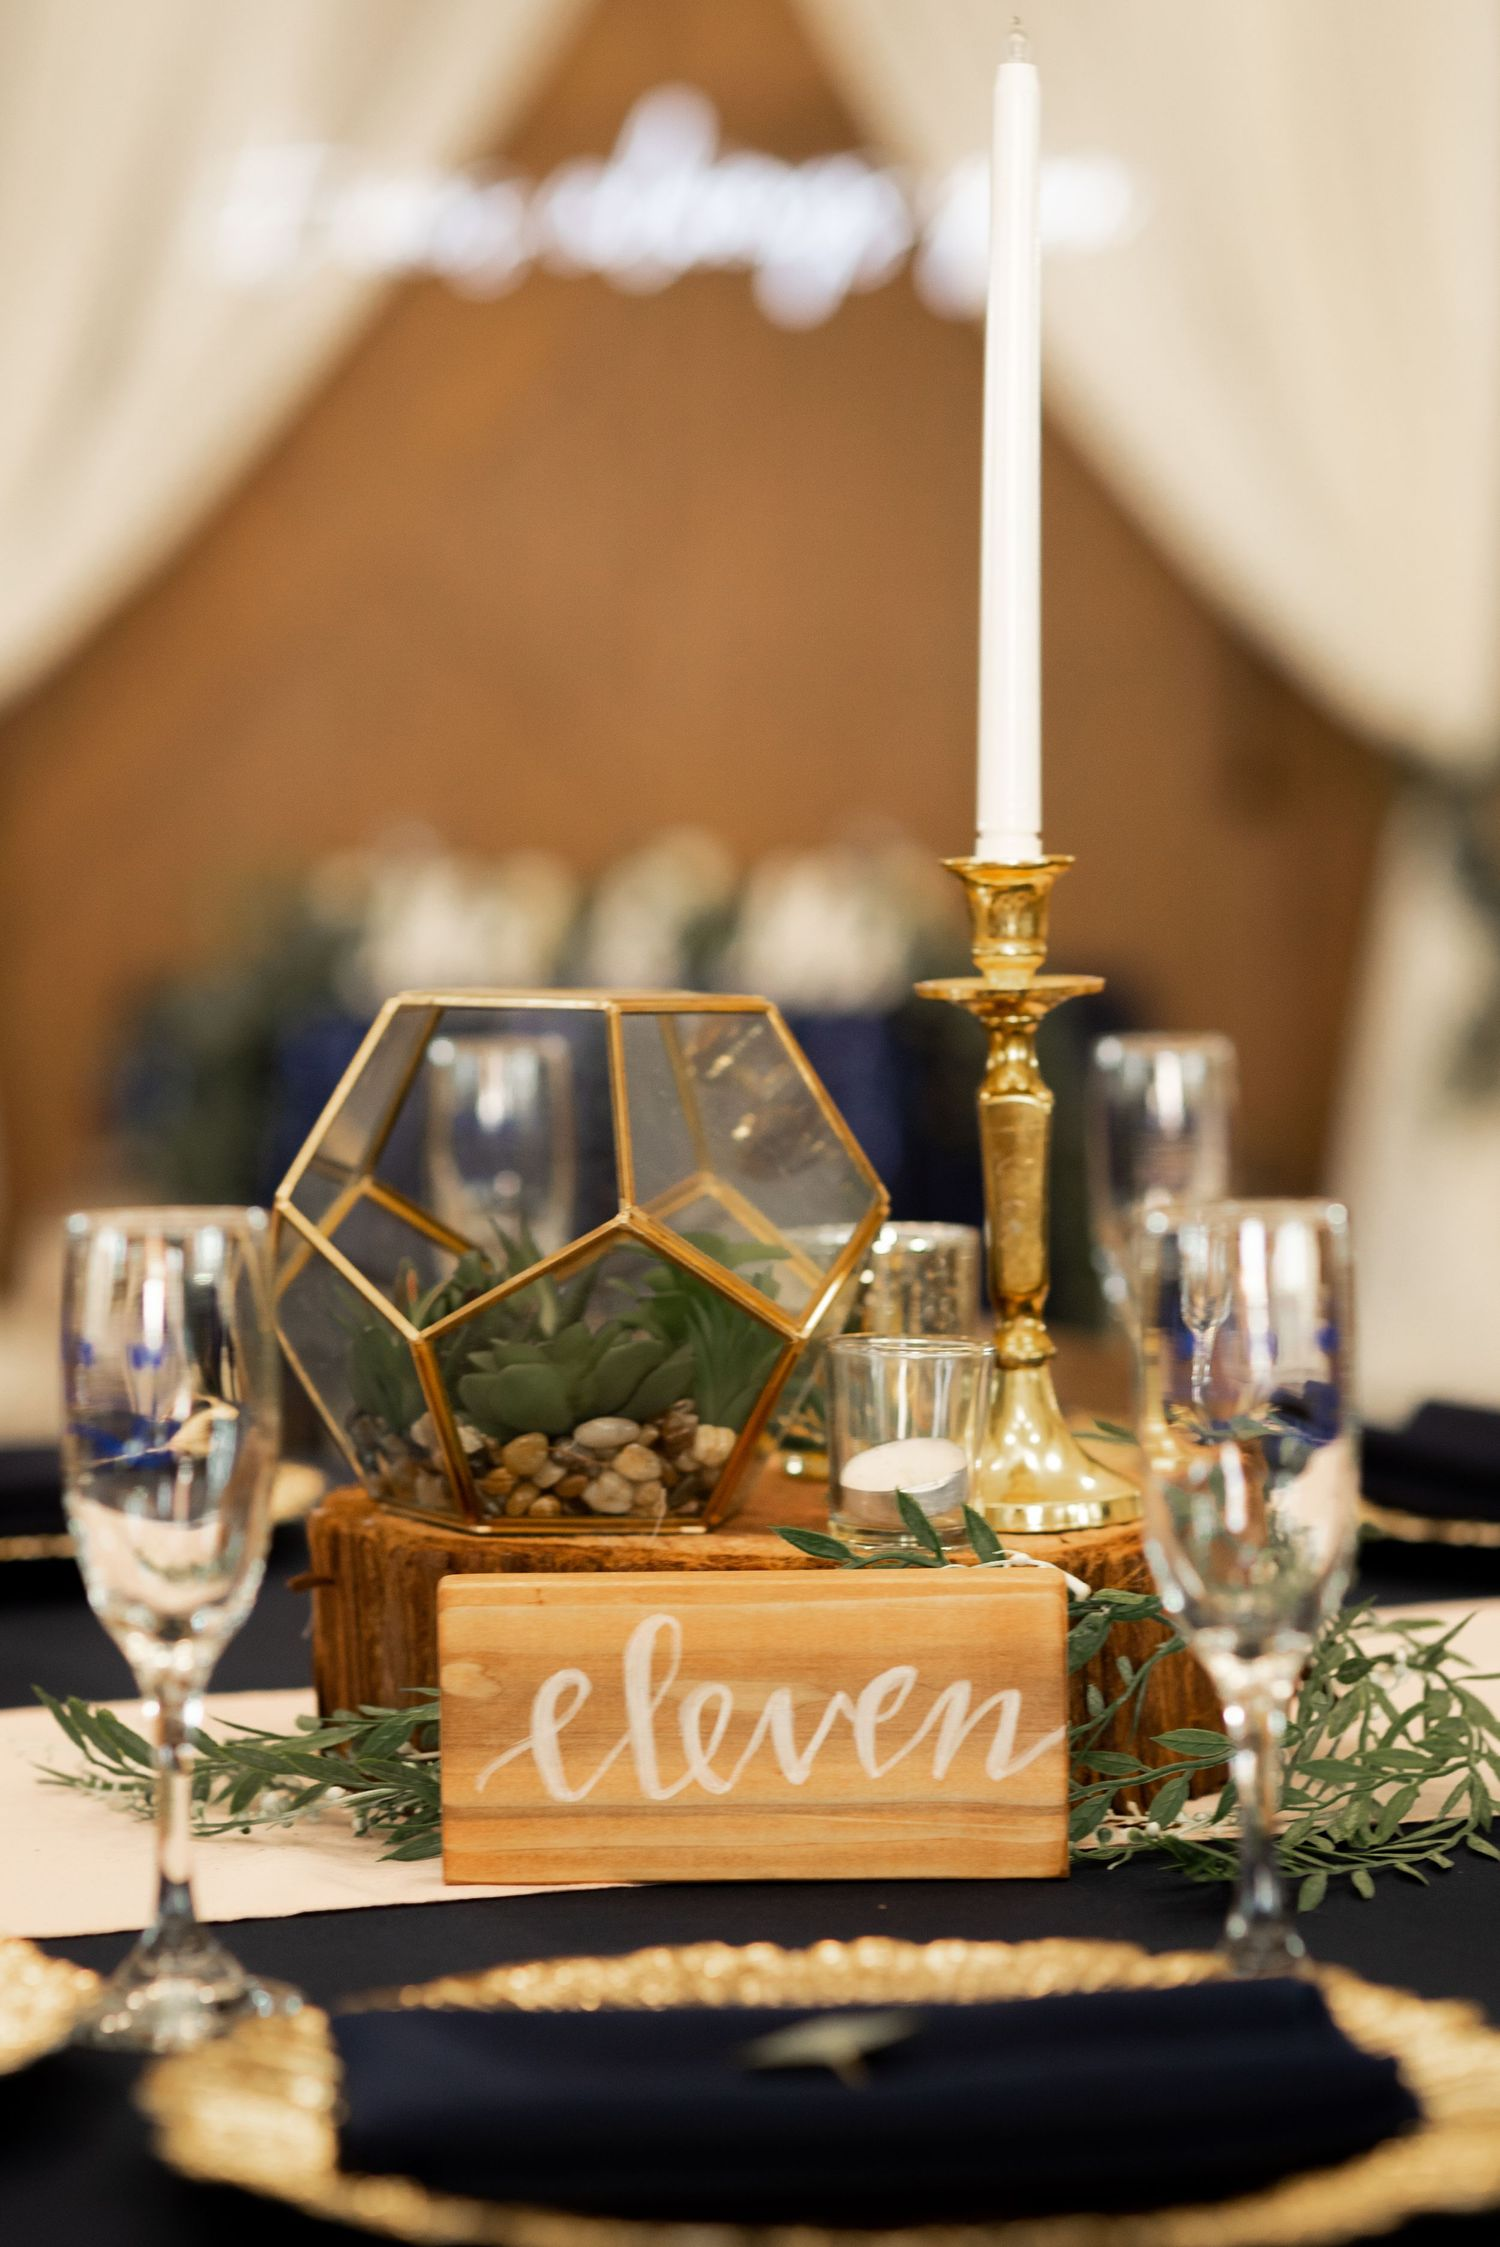 Design by Touch of Elegance for KRW wedding by Miranda Munoz Photography